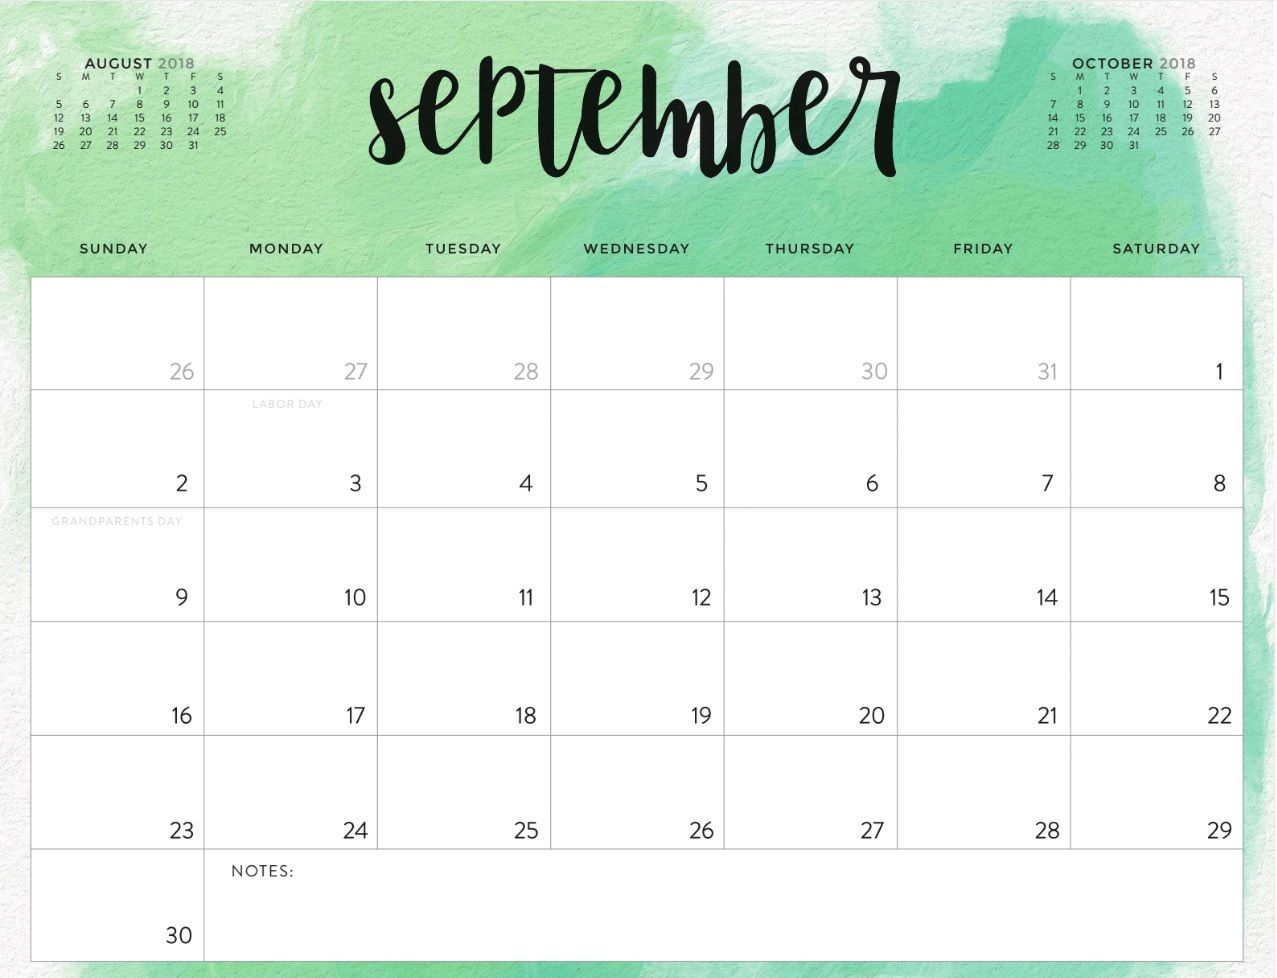 September 2018 Calendar Printable Waterproof | Printable ...